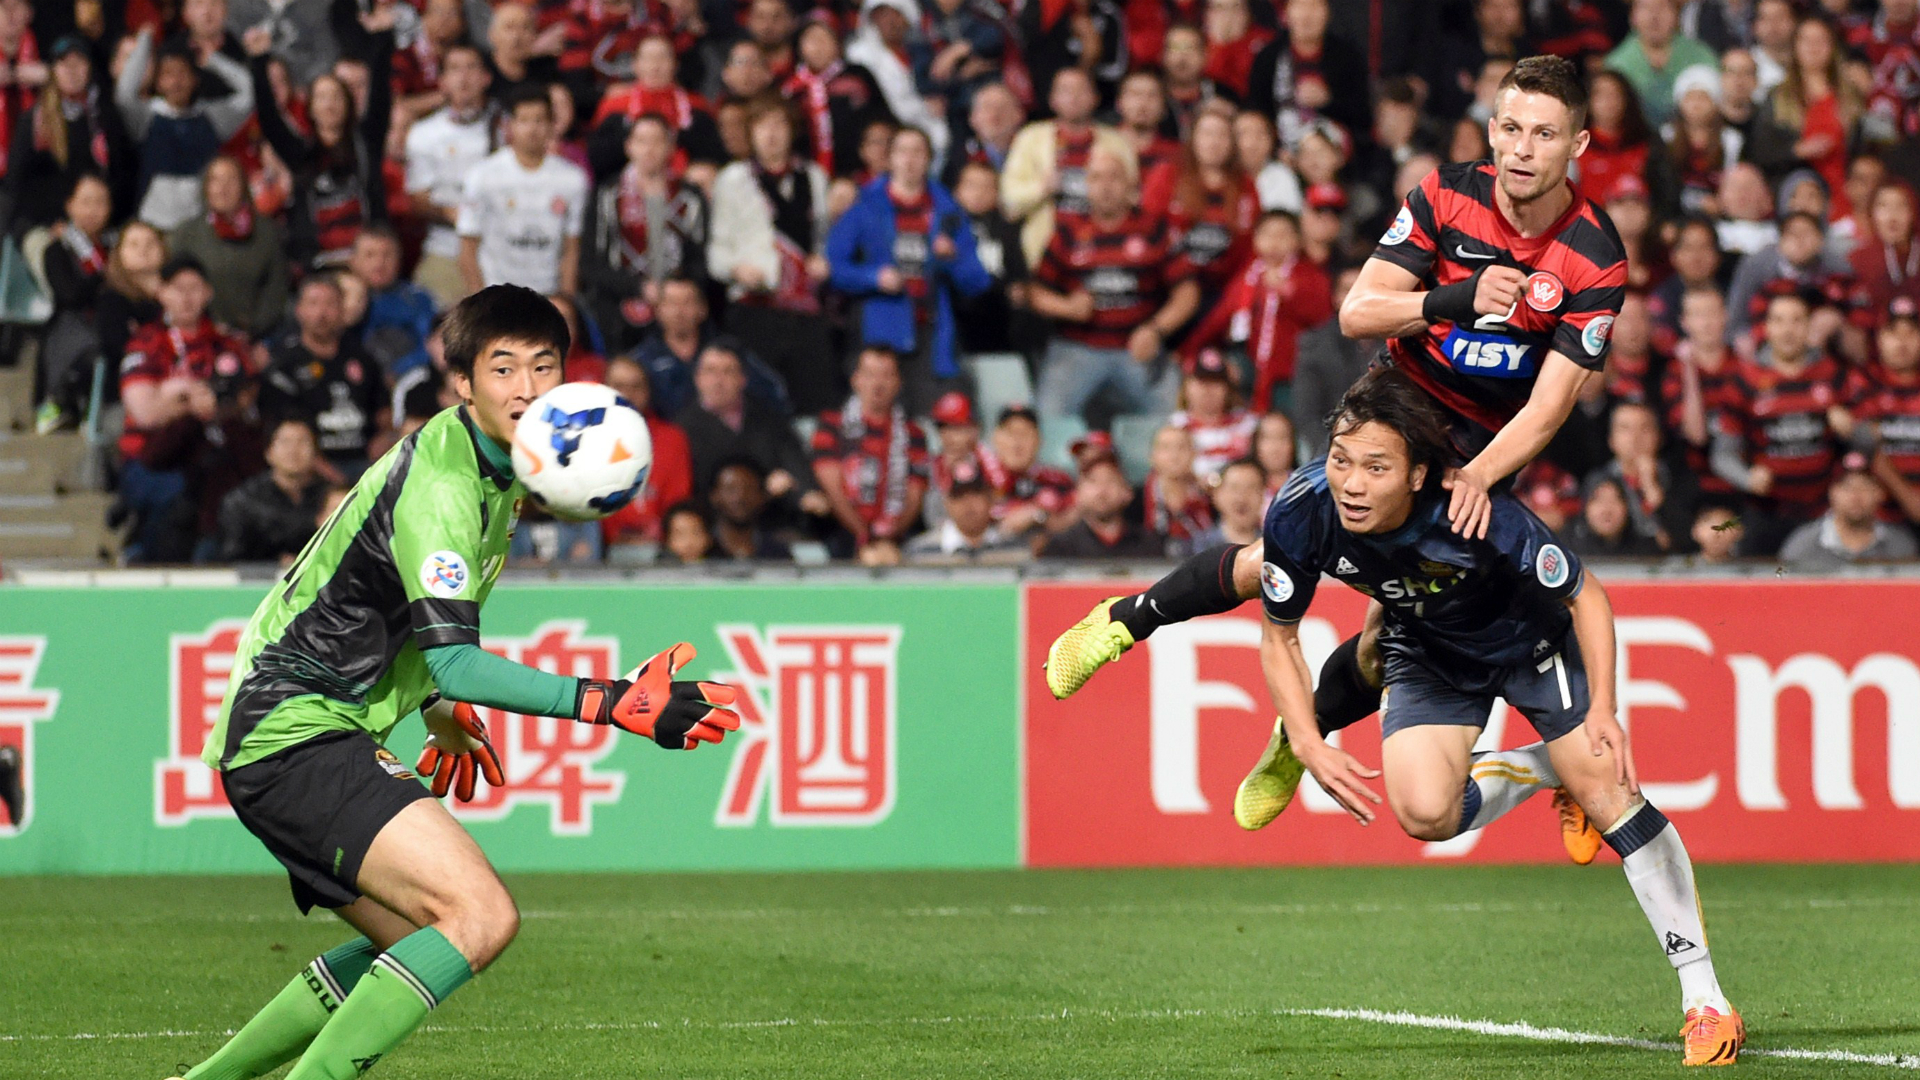 Shannon Cole Western Sydney Wanderers v FC Seoul AFC Champions League 01102014